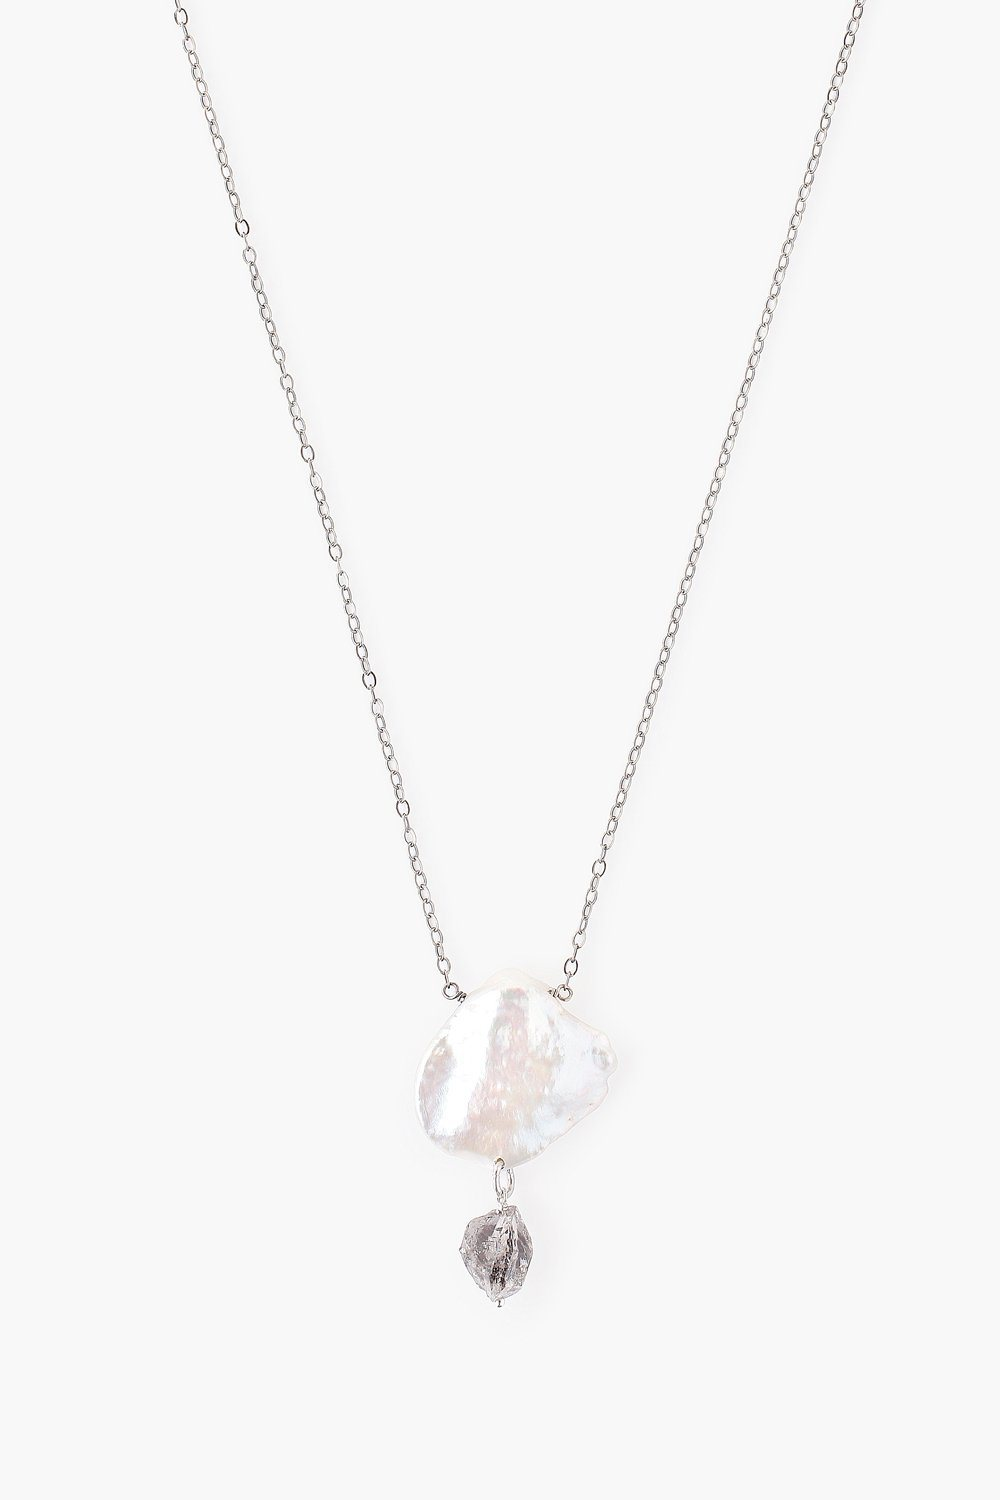 White Keshi Pearl and Herkimer Quartz Silver Necklace